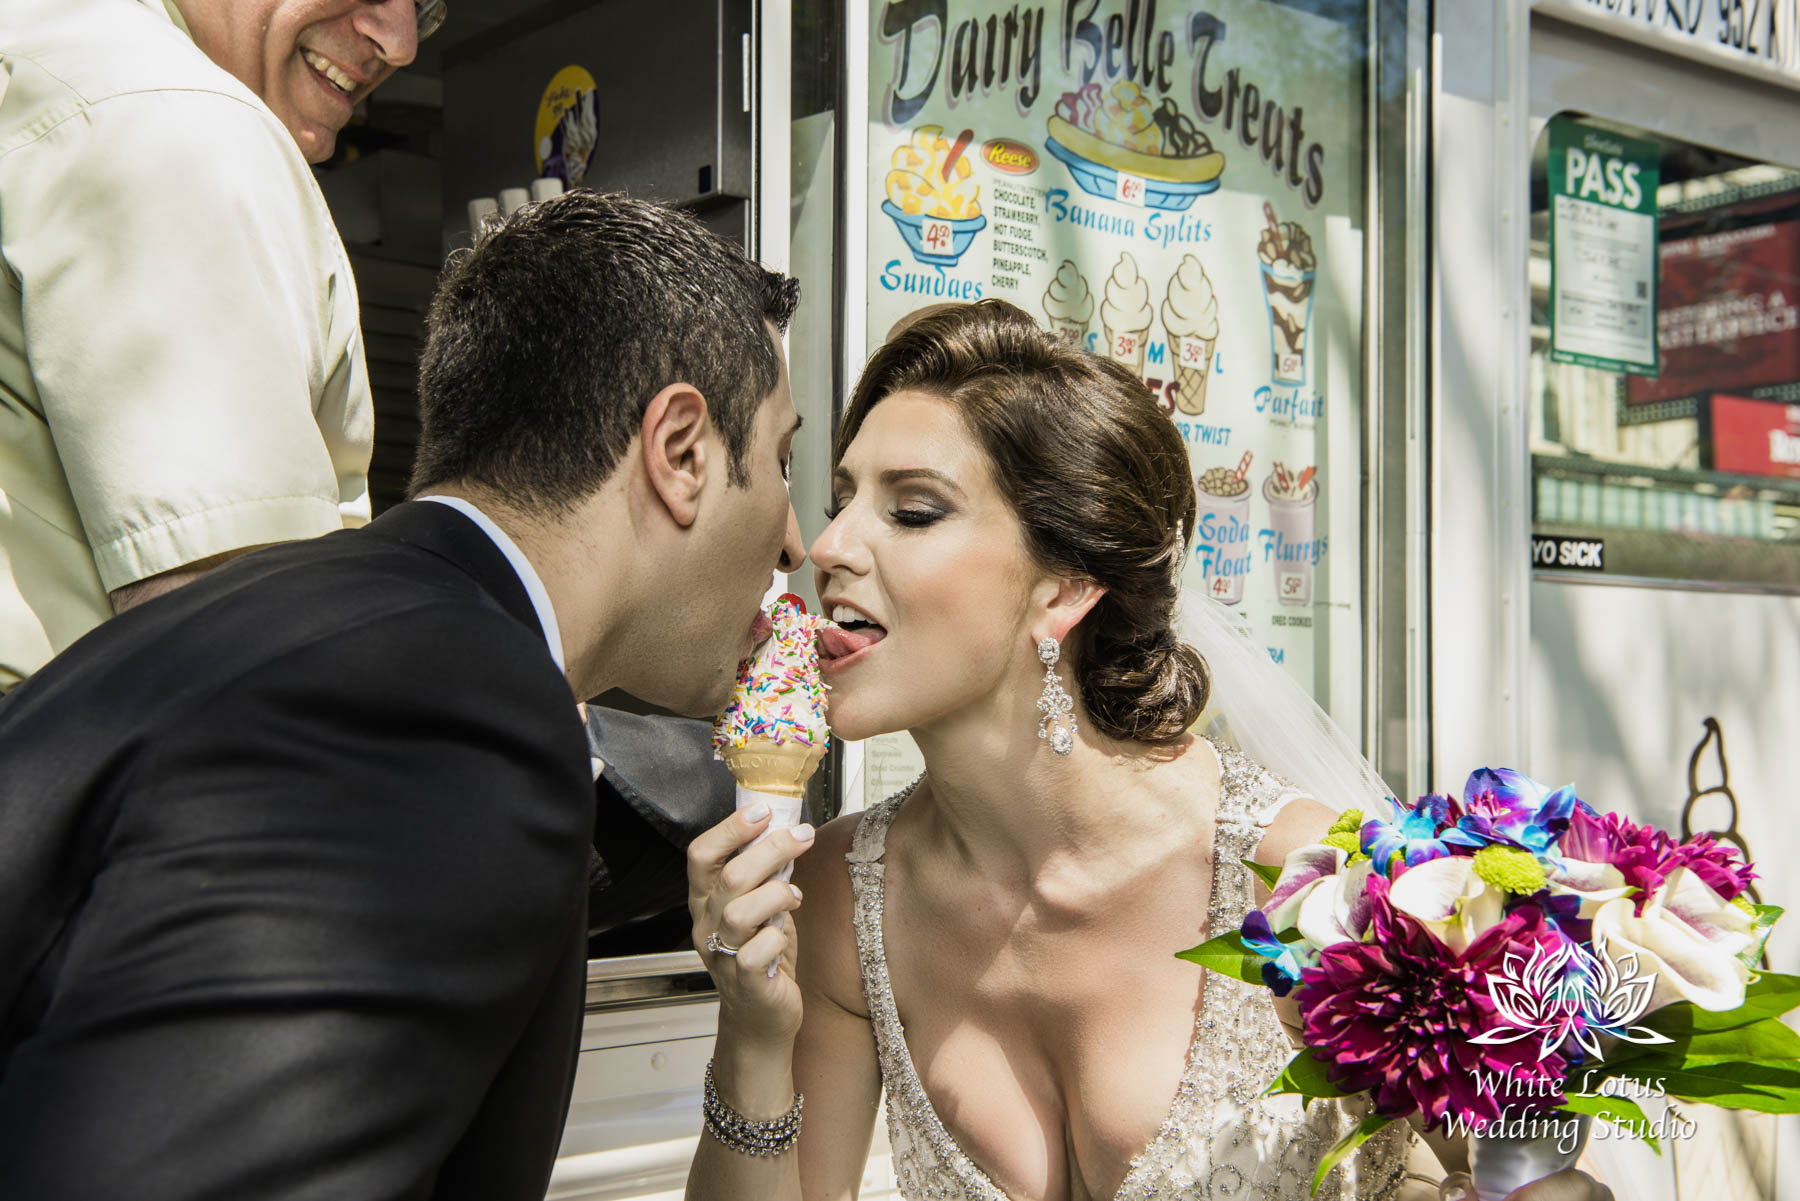 079 - Wedding - Toronto - Downtown wedding photo-walk - PW